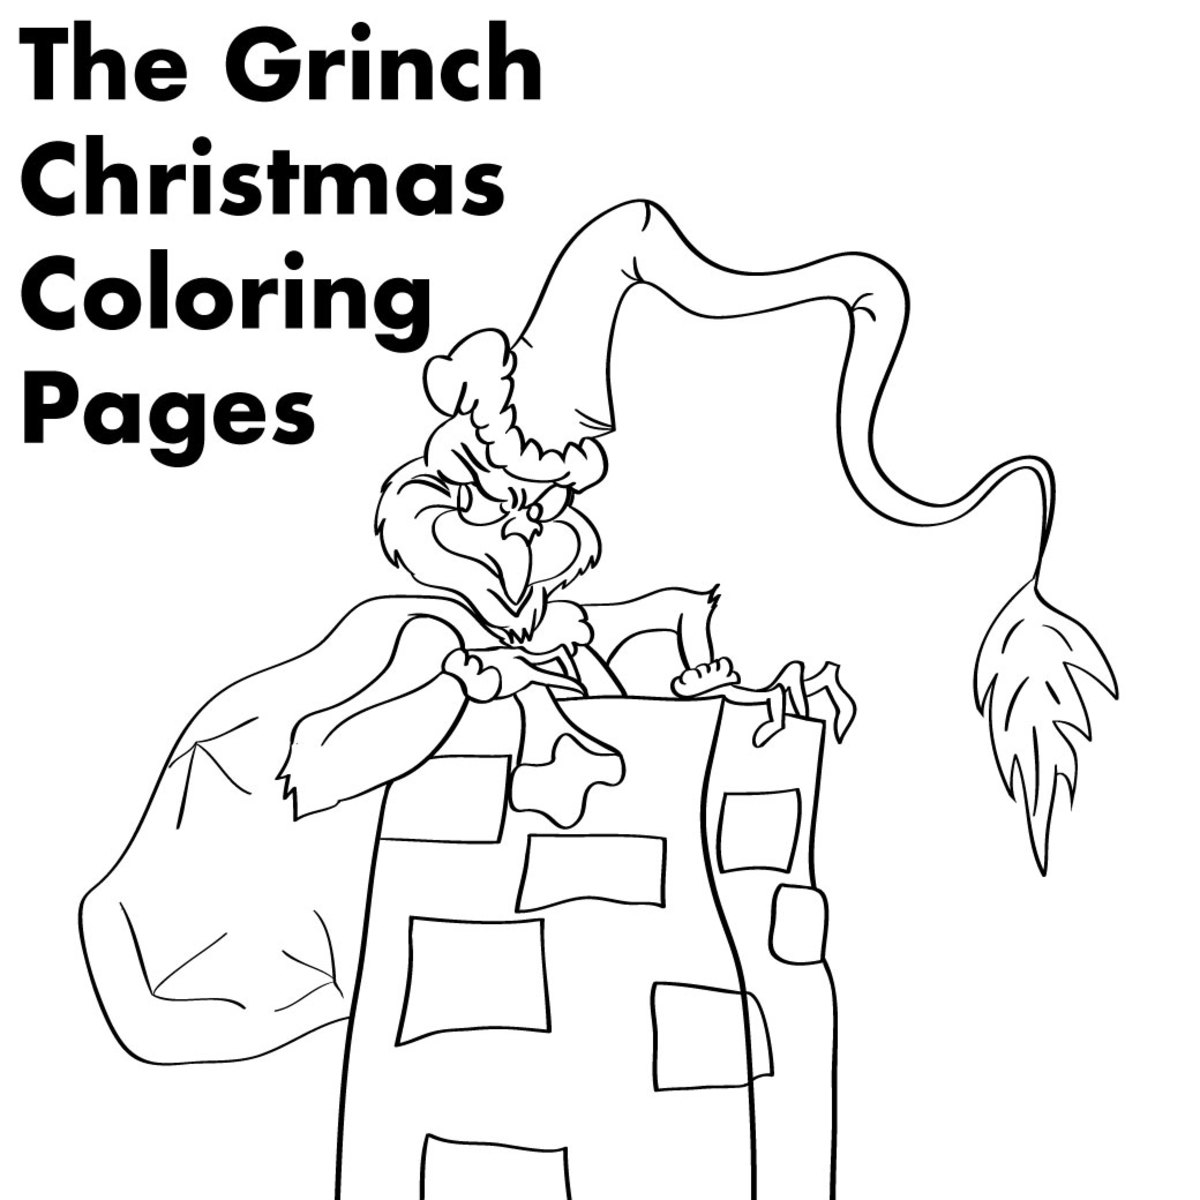 grinch christmas coloring pages the grinch sneaking out to steal christmas gifts coloring grinch christmas pages coloring